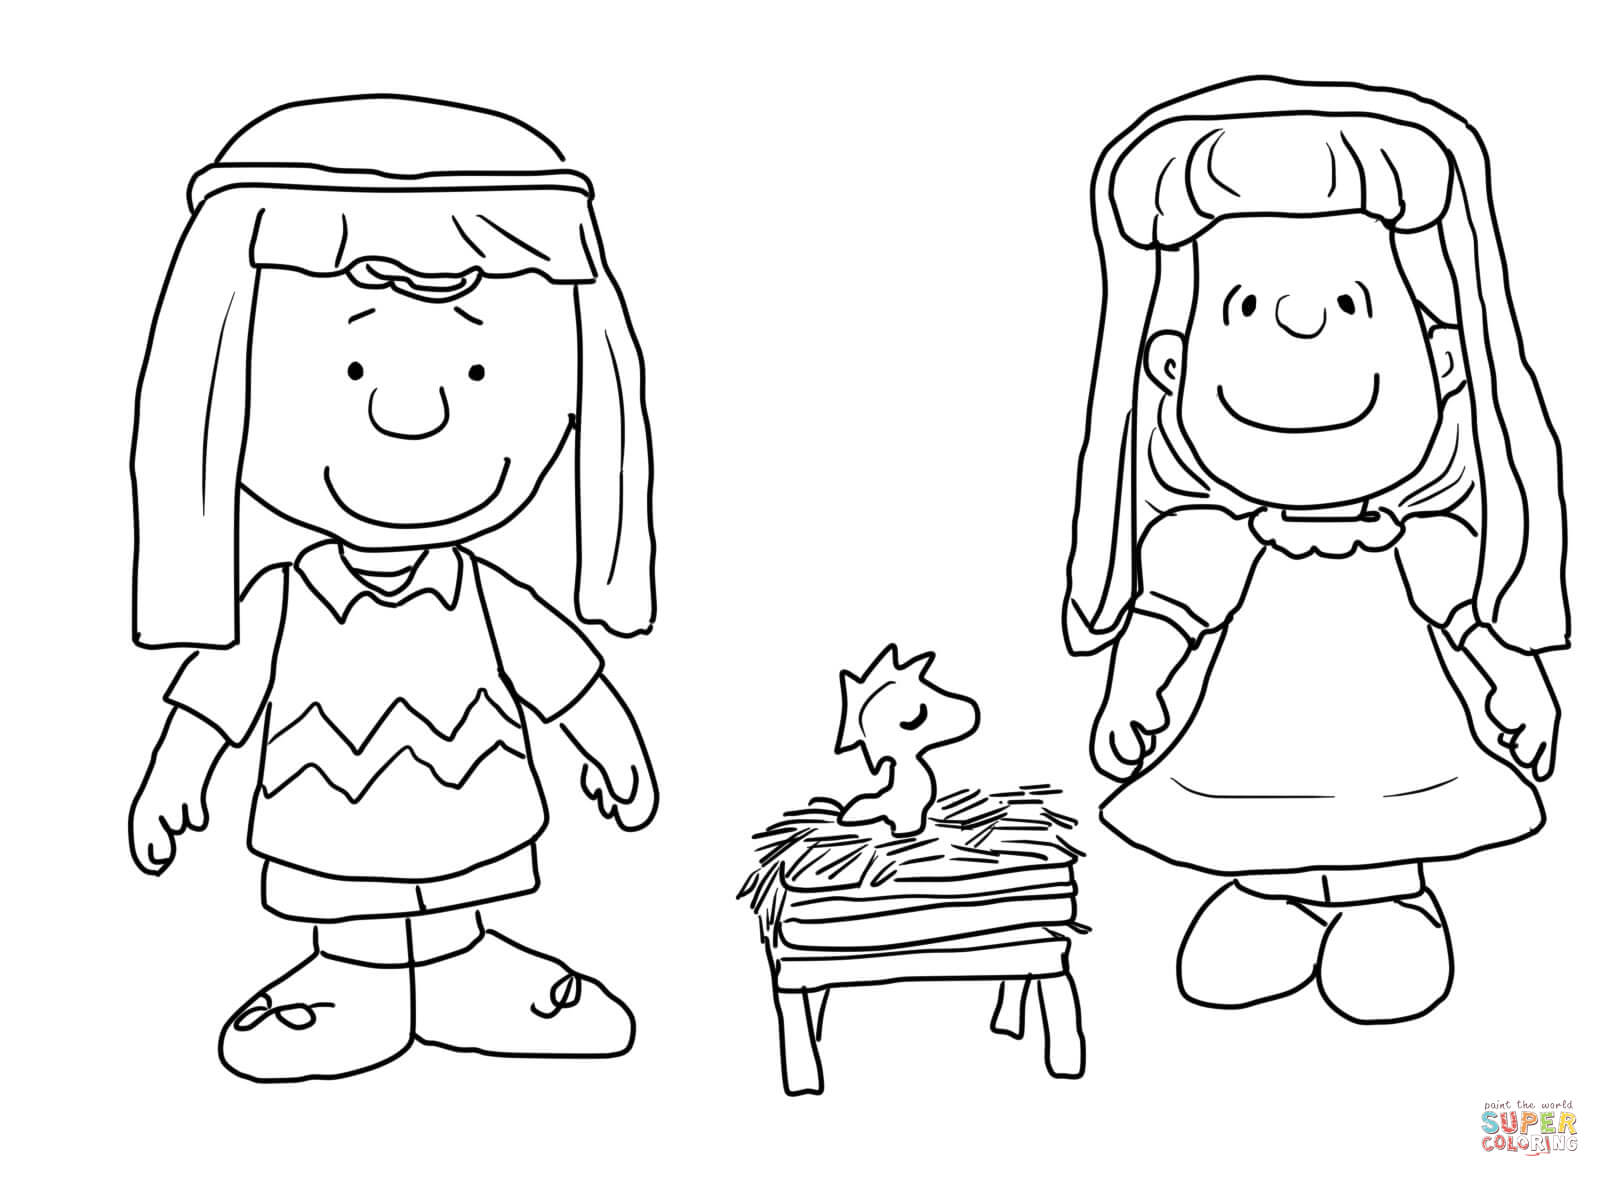 charlie brown characters coloring pages - coloring home - Nativity Character Coloring Pages